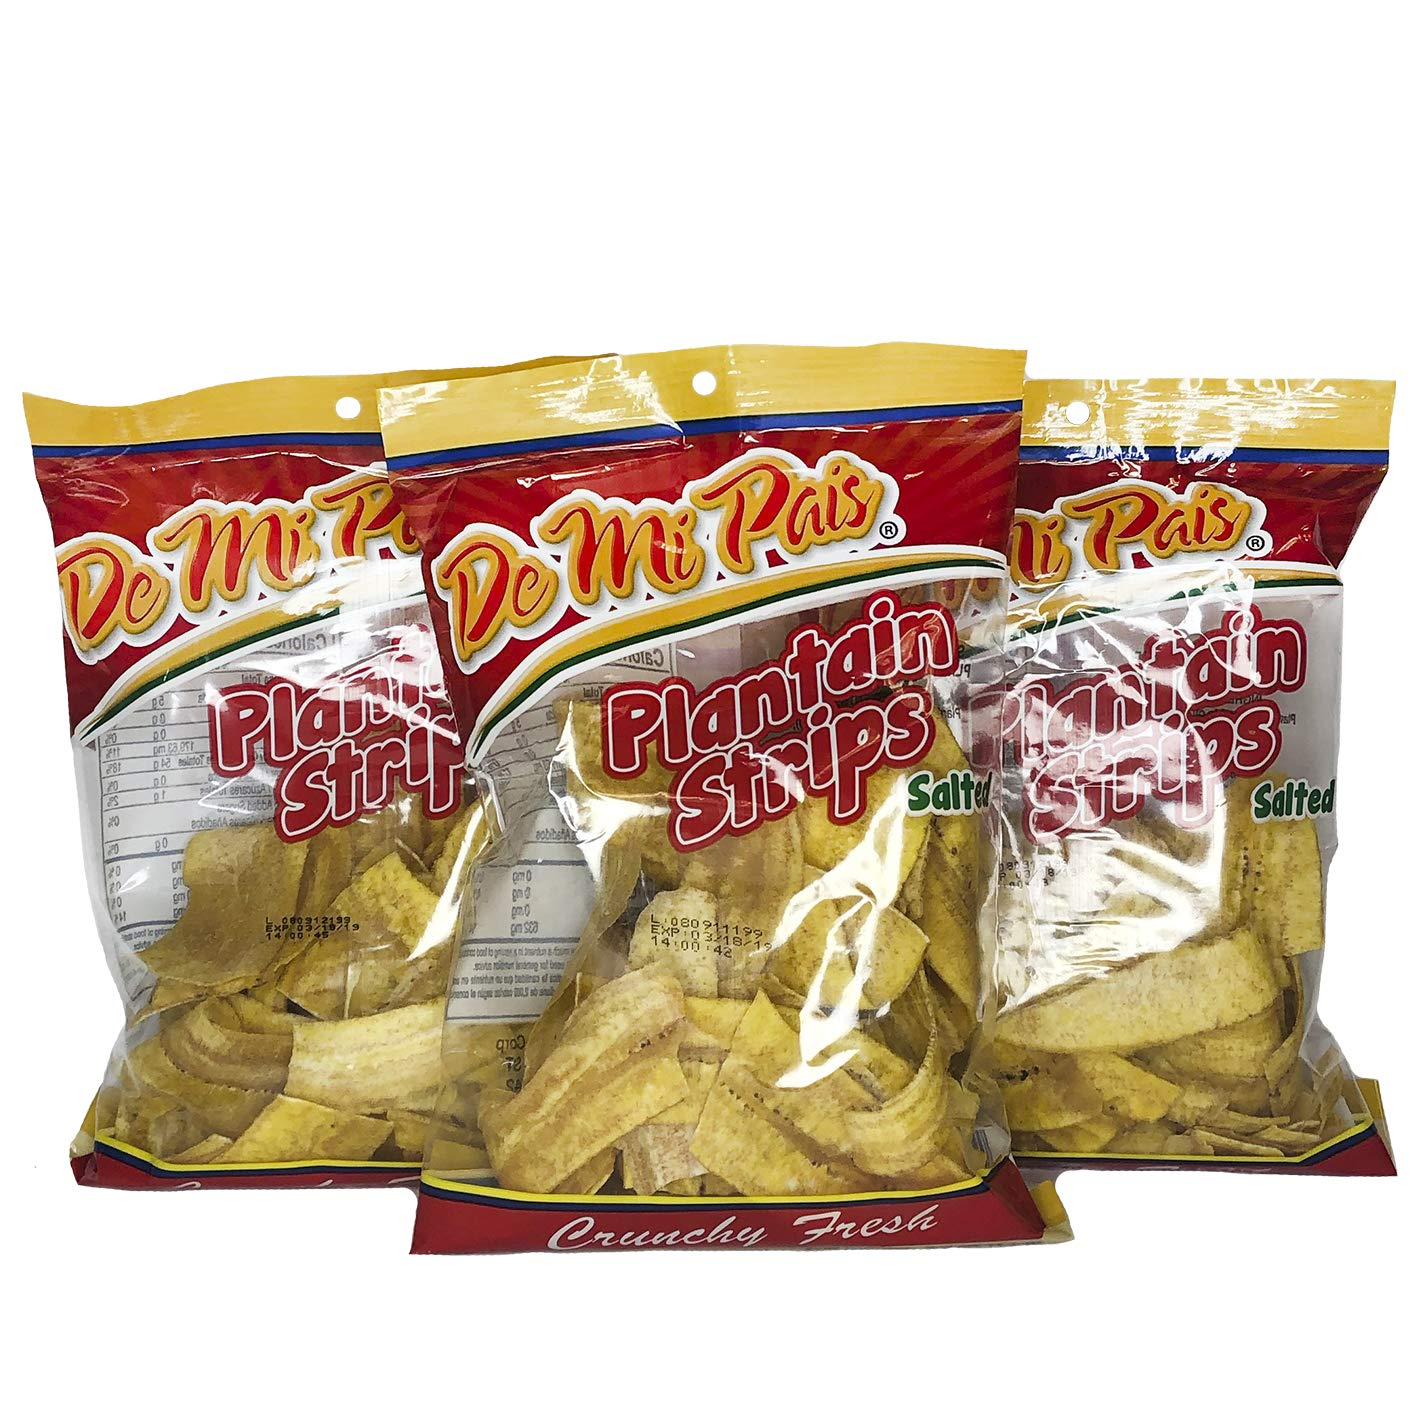 DMP Salted Plantain Strips 24-PACK